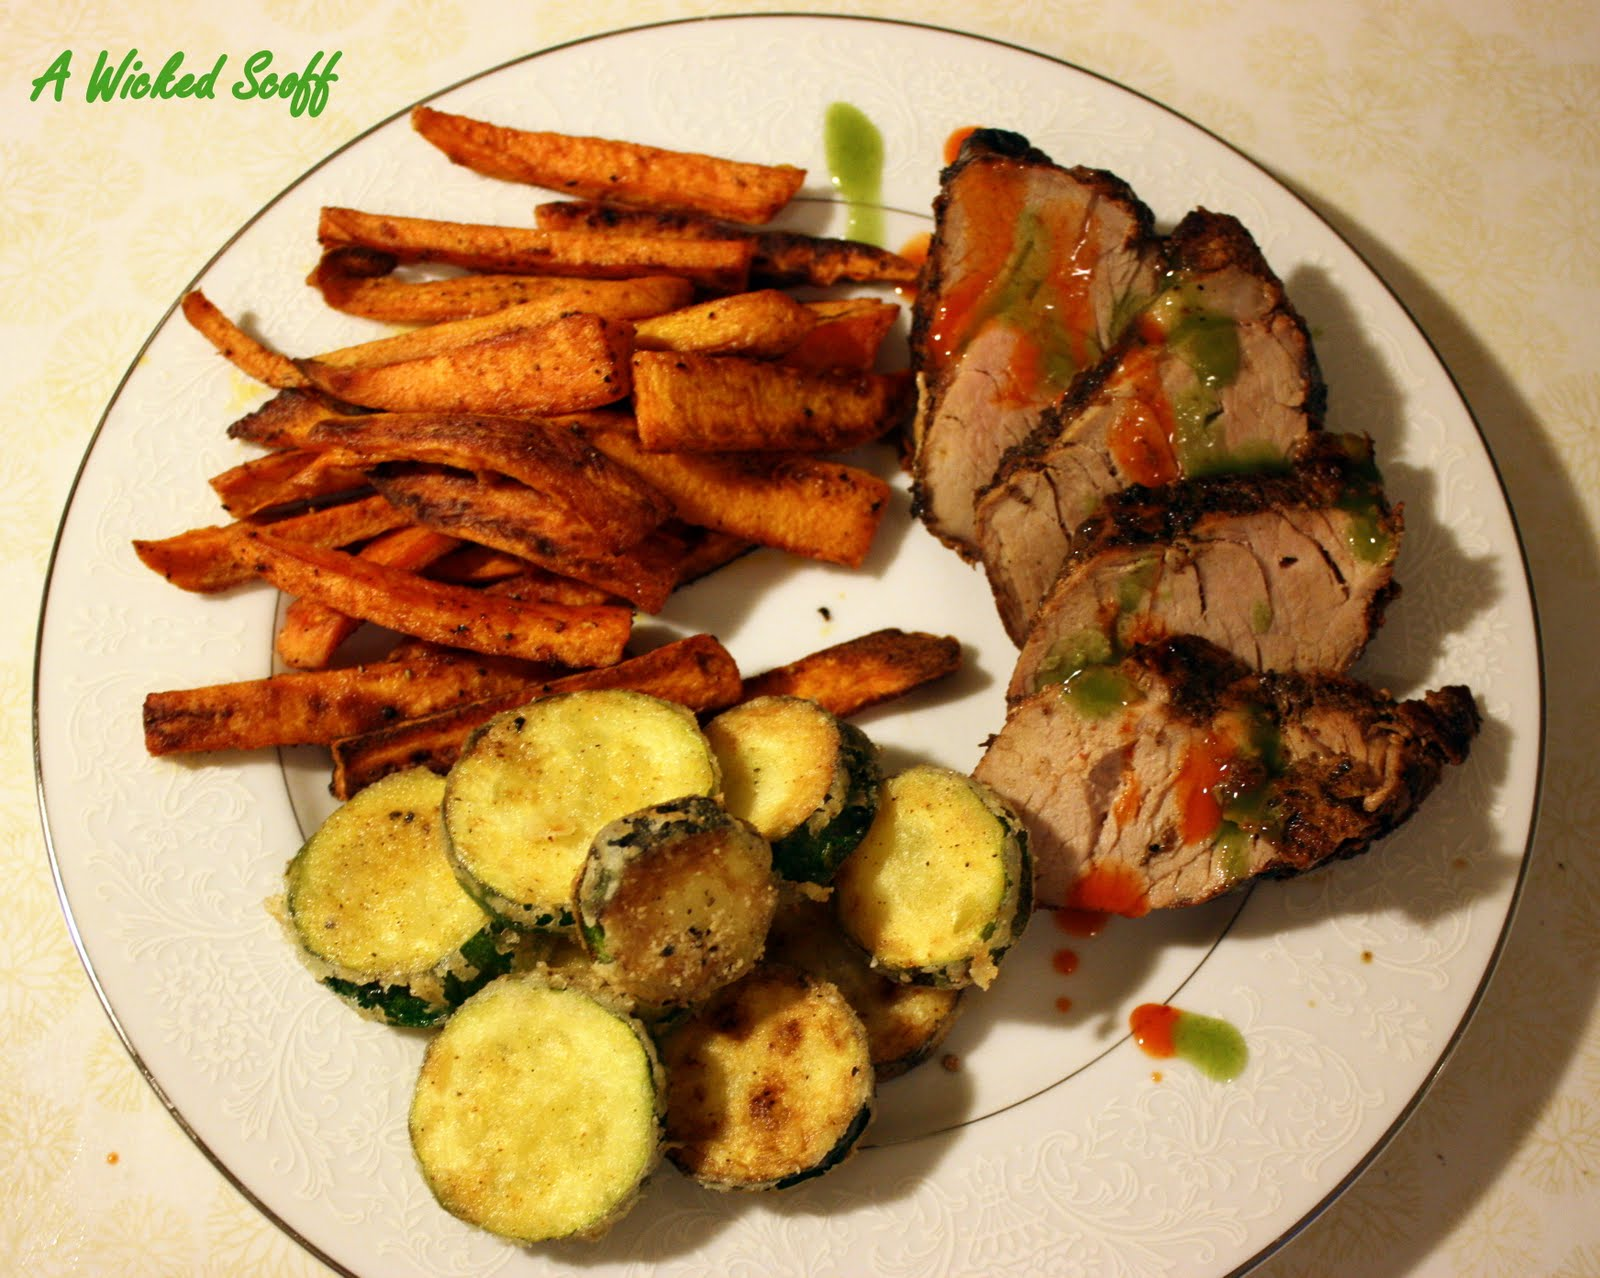 pan fried pork chops with creamy gravy dry fried pork with zucchini ...